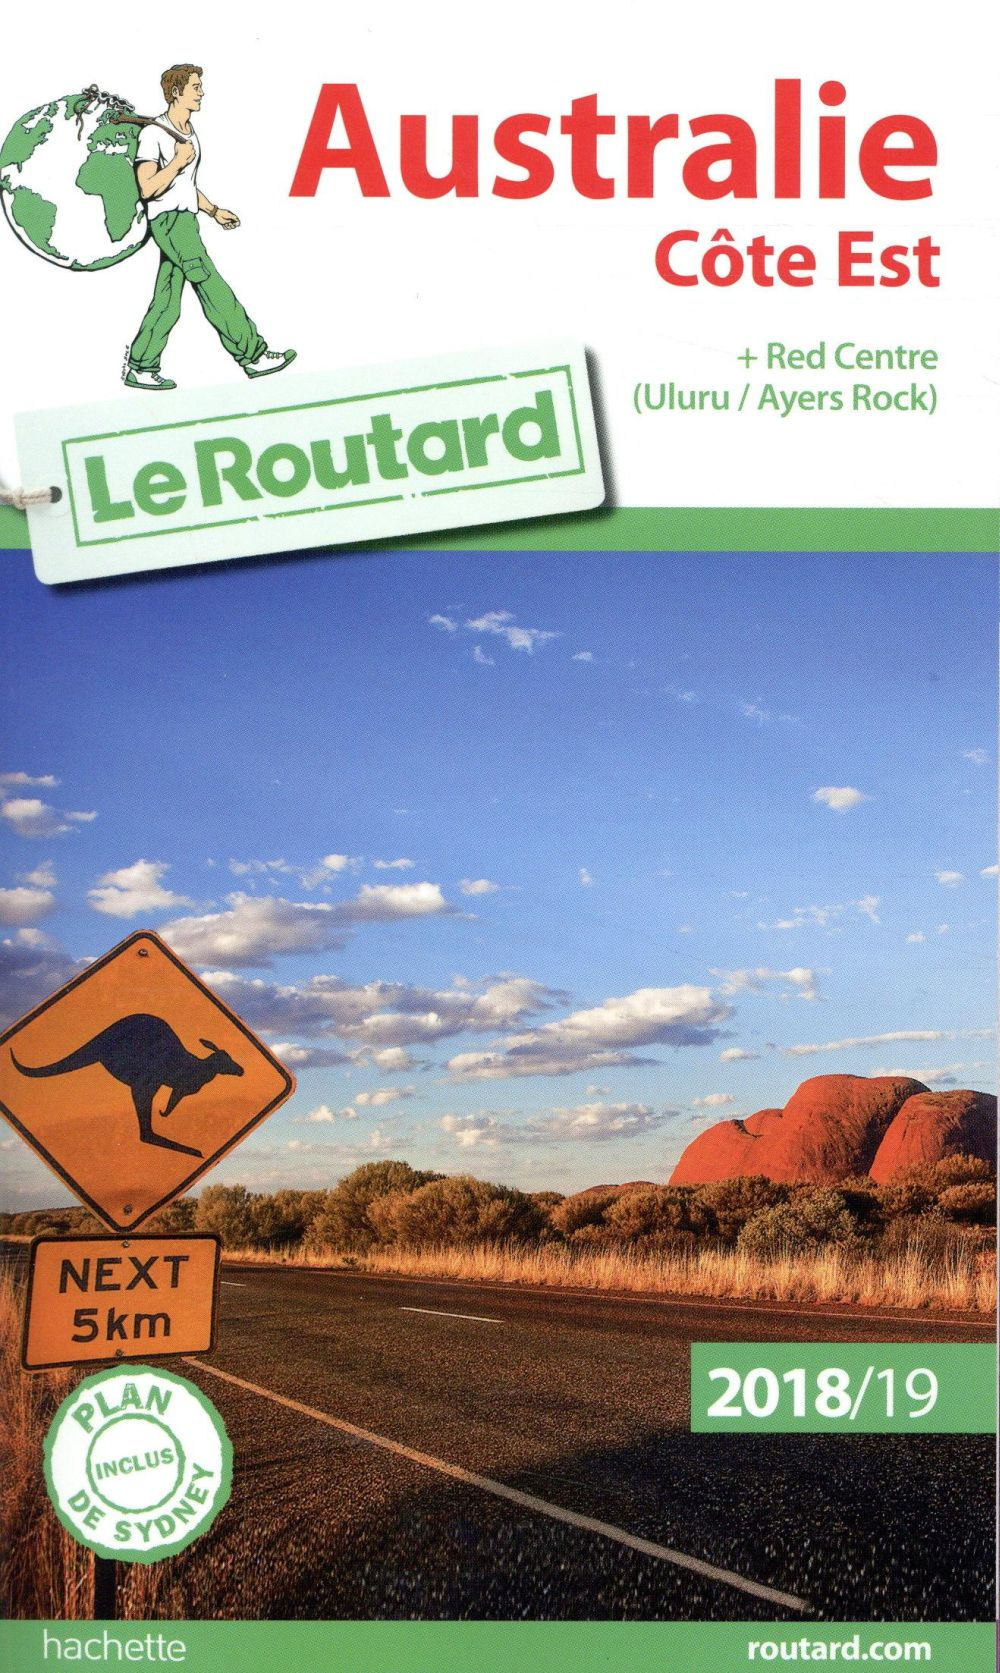 GUIDE DU ROUTARD AUSTRALIE COTE EST 201819 - COTE EST + RED CENTRE (ULURUAYERS ROCK)